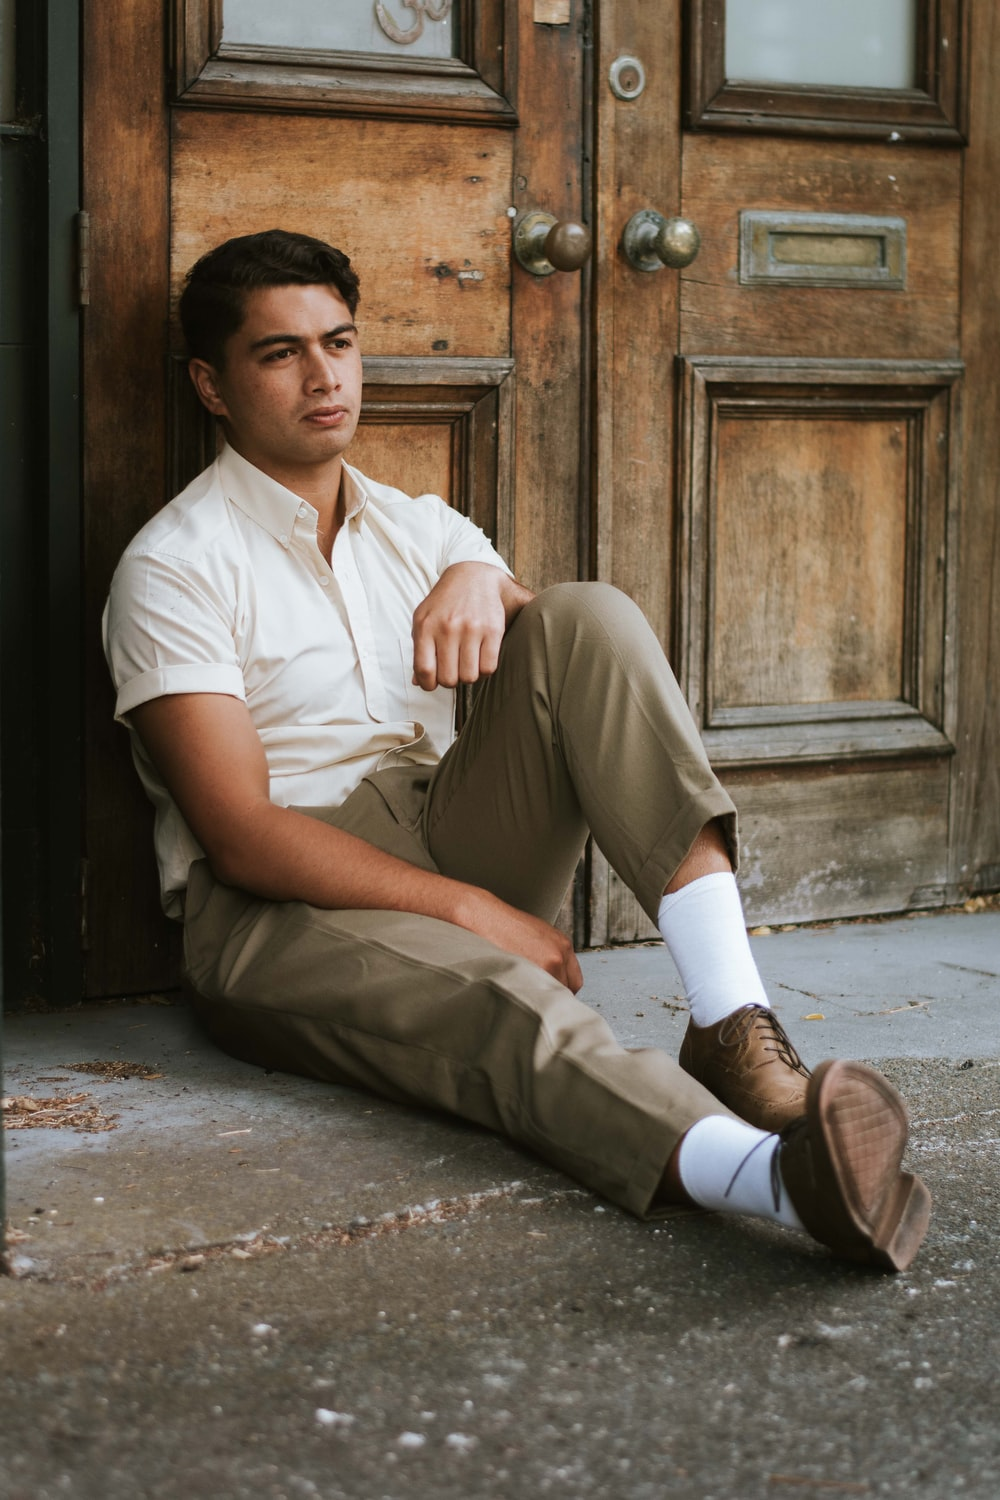 man in white button up shirt and brown pants sitting on concrete floor